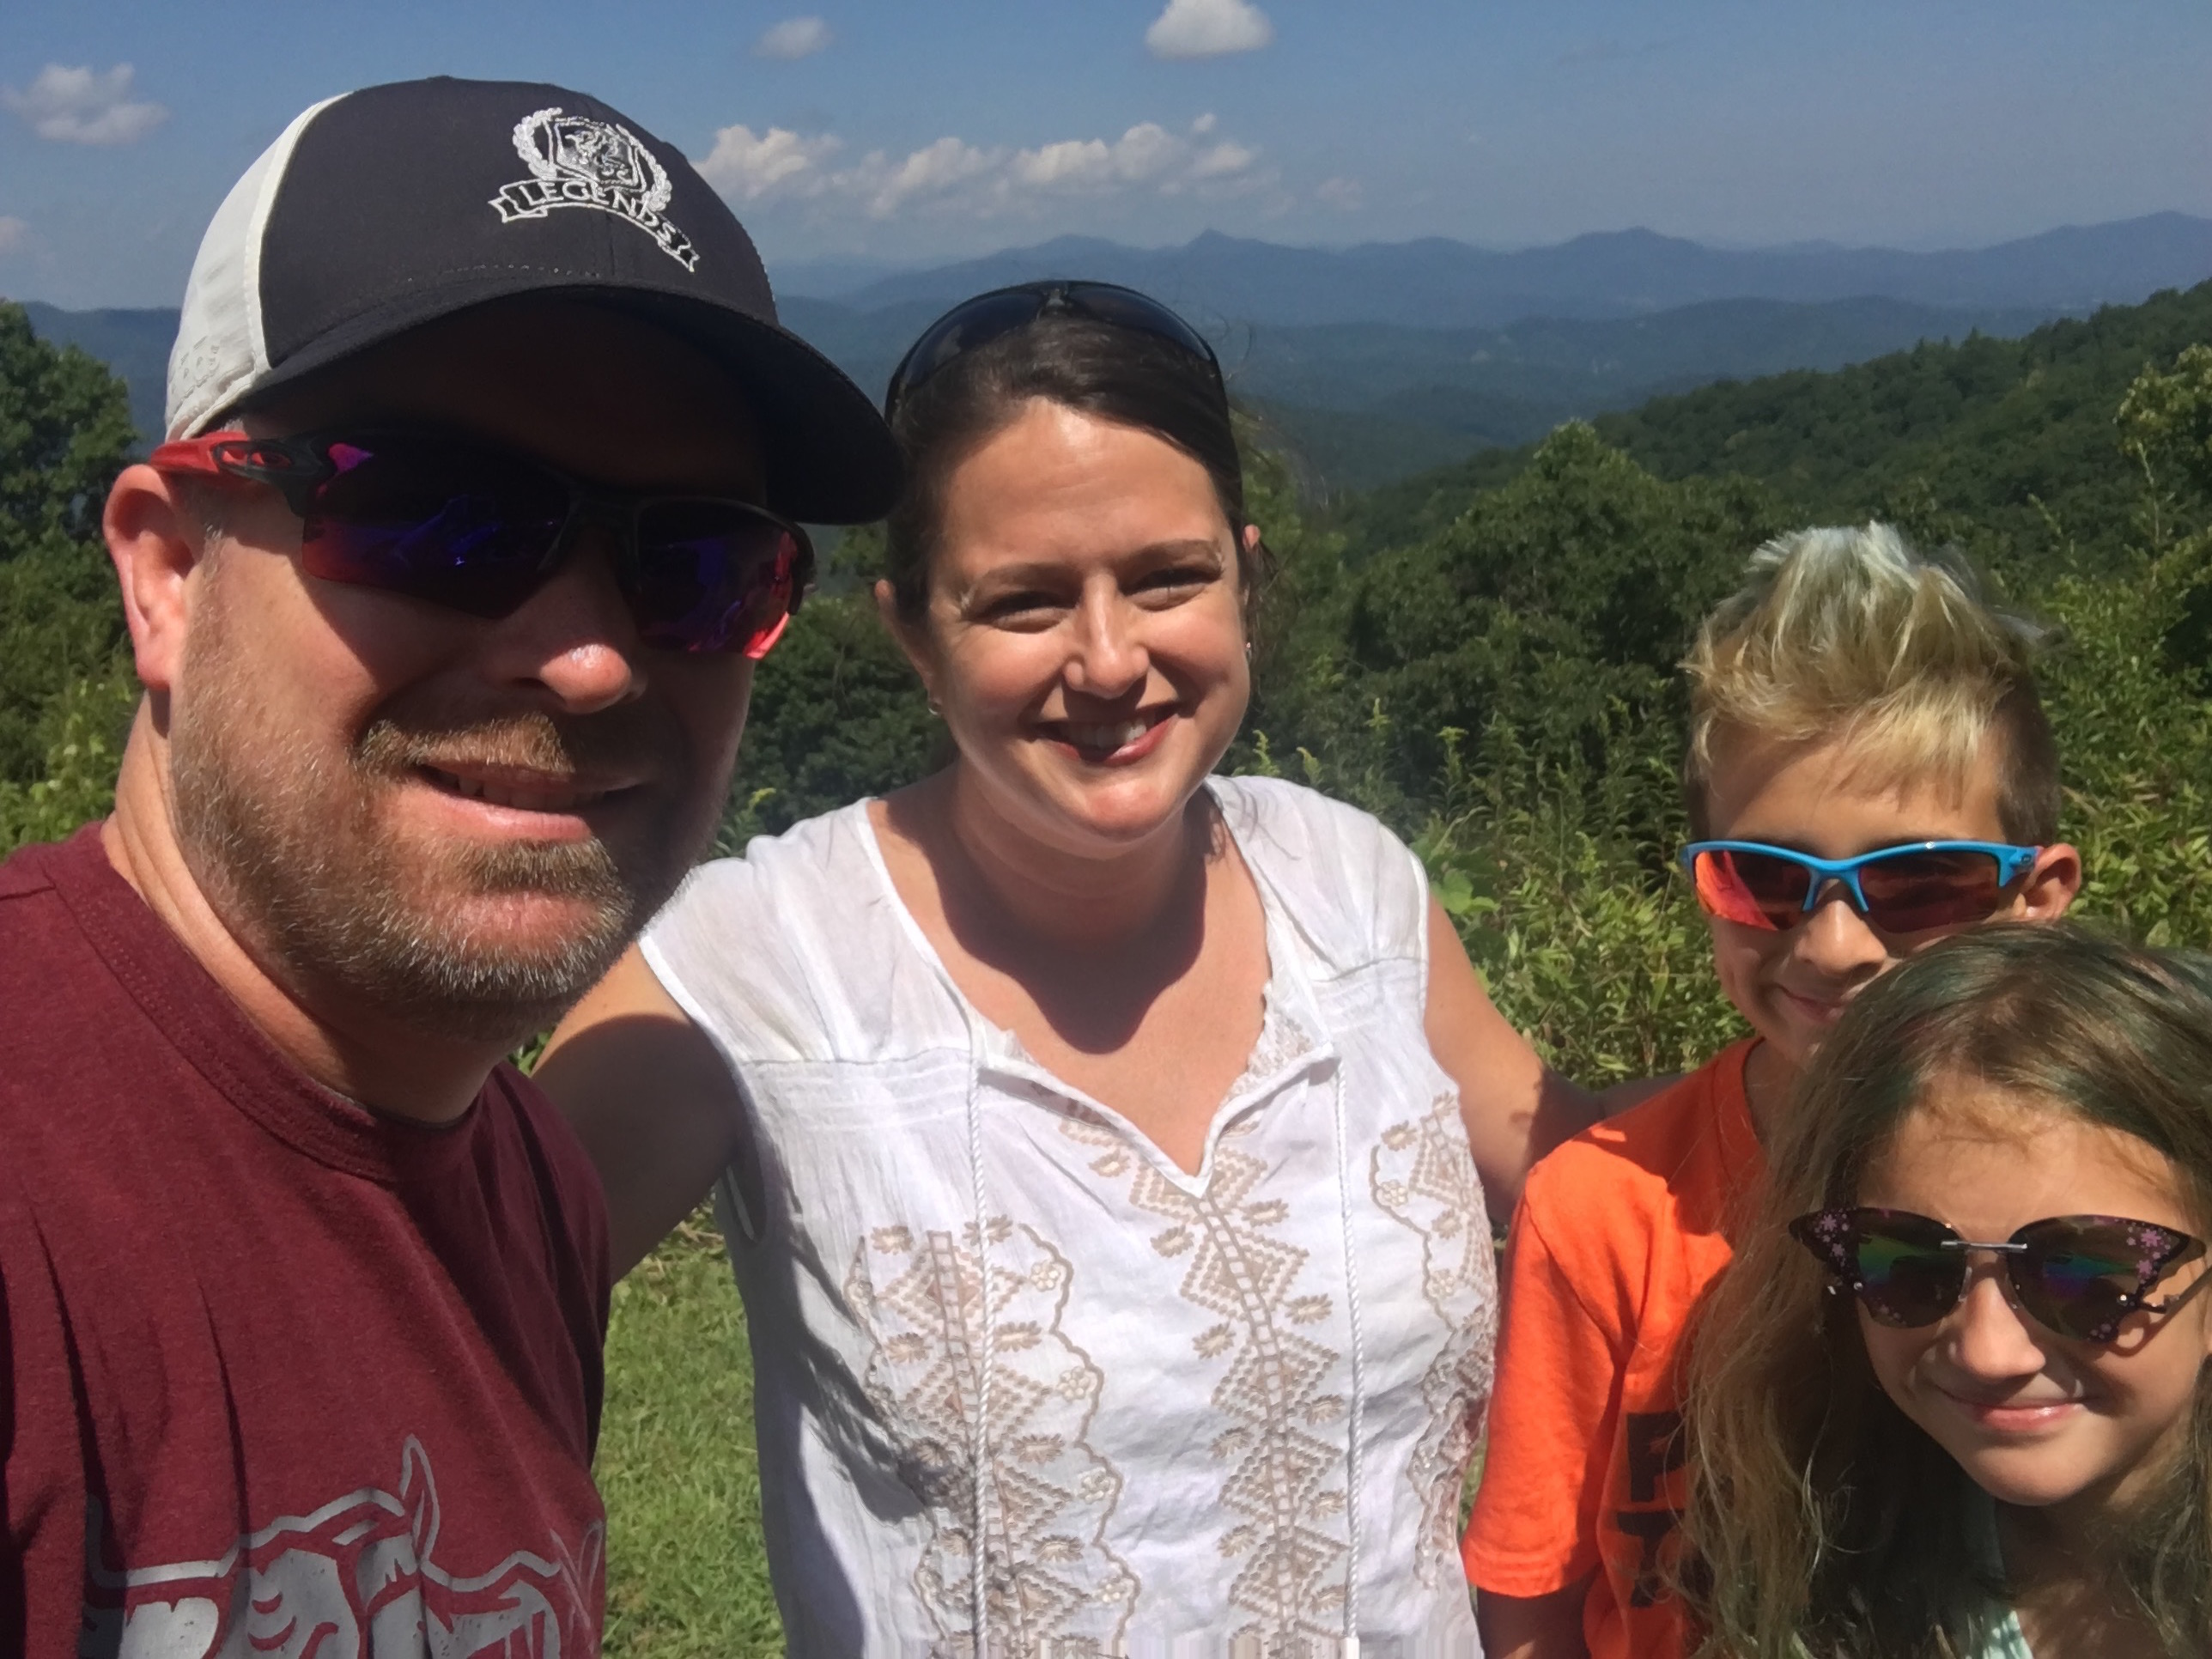 Beth Messersmith of Durham, N.C., pictured here with her family, is concerned about an industrial chemical that has contaminated local drinking water.